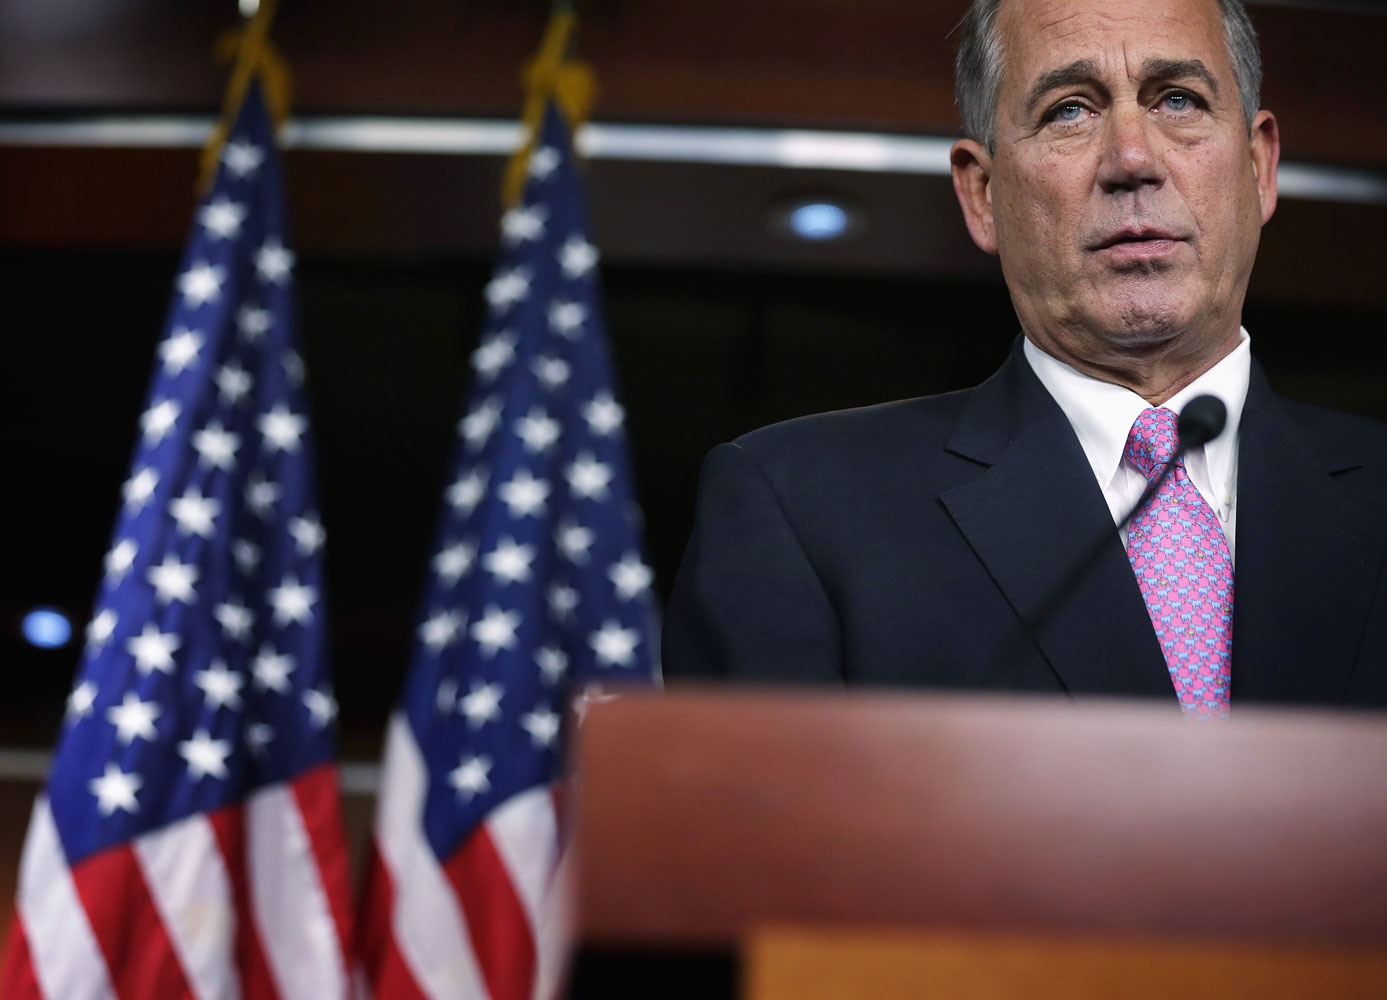 Speaker of the House, John Boehner speaks during his weekly news conference Feb. 6, 2014 on Capitol Hill in Washington.